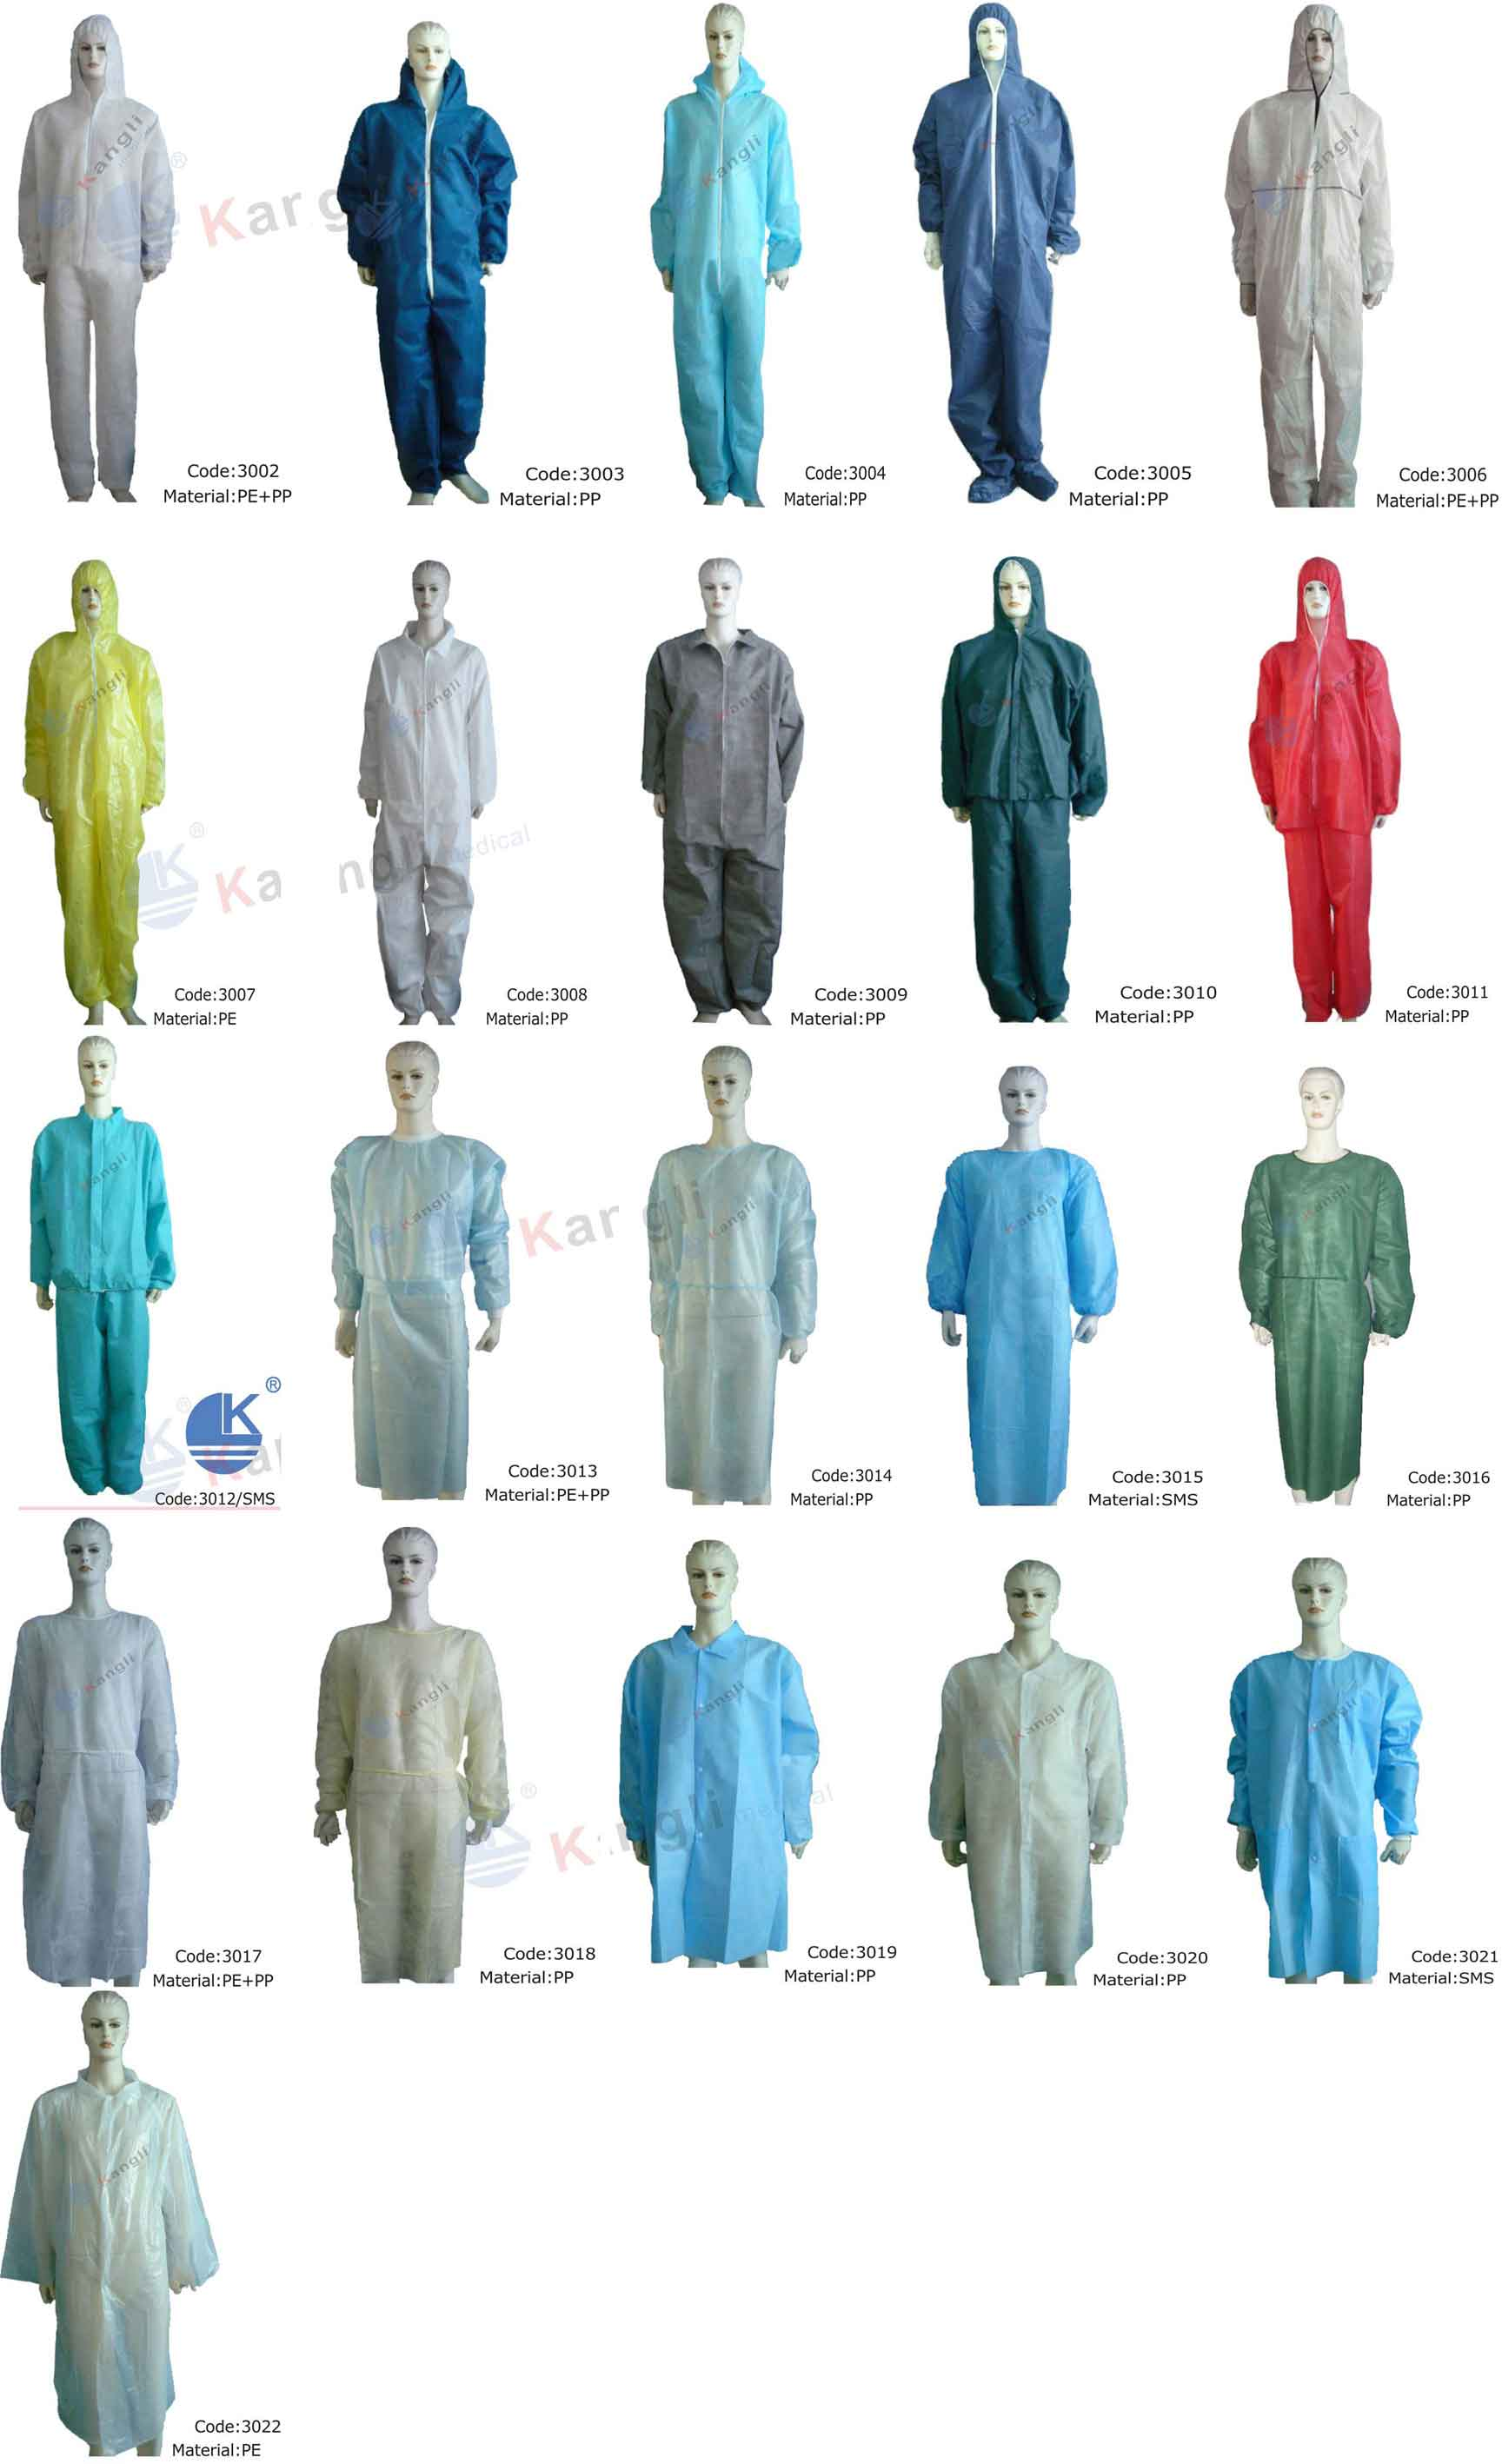 Isolation Gowns_Shandong Kangli Medical Equipment Technology Co., Ltd.